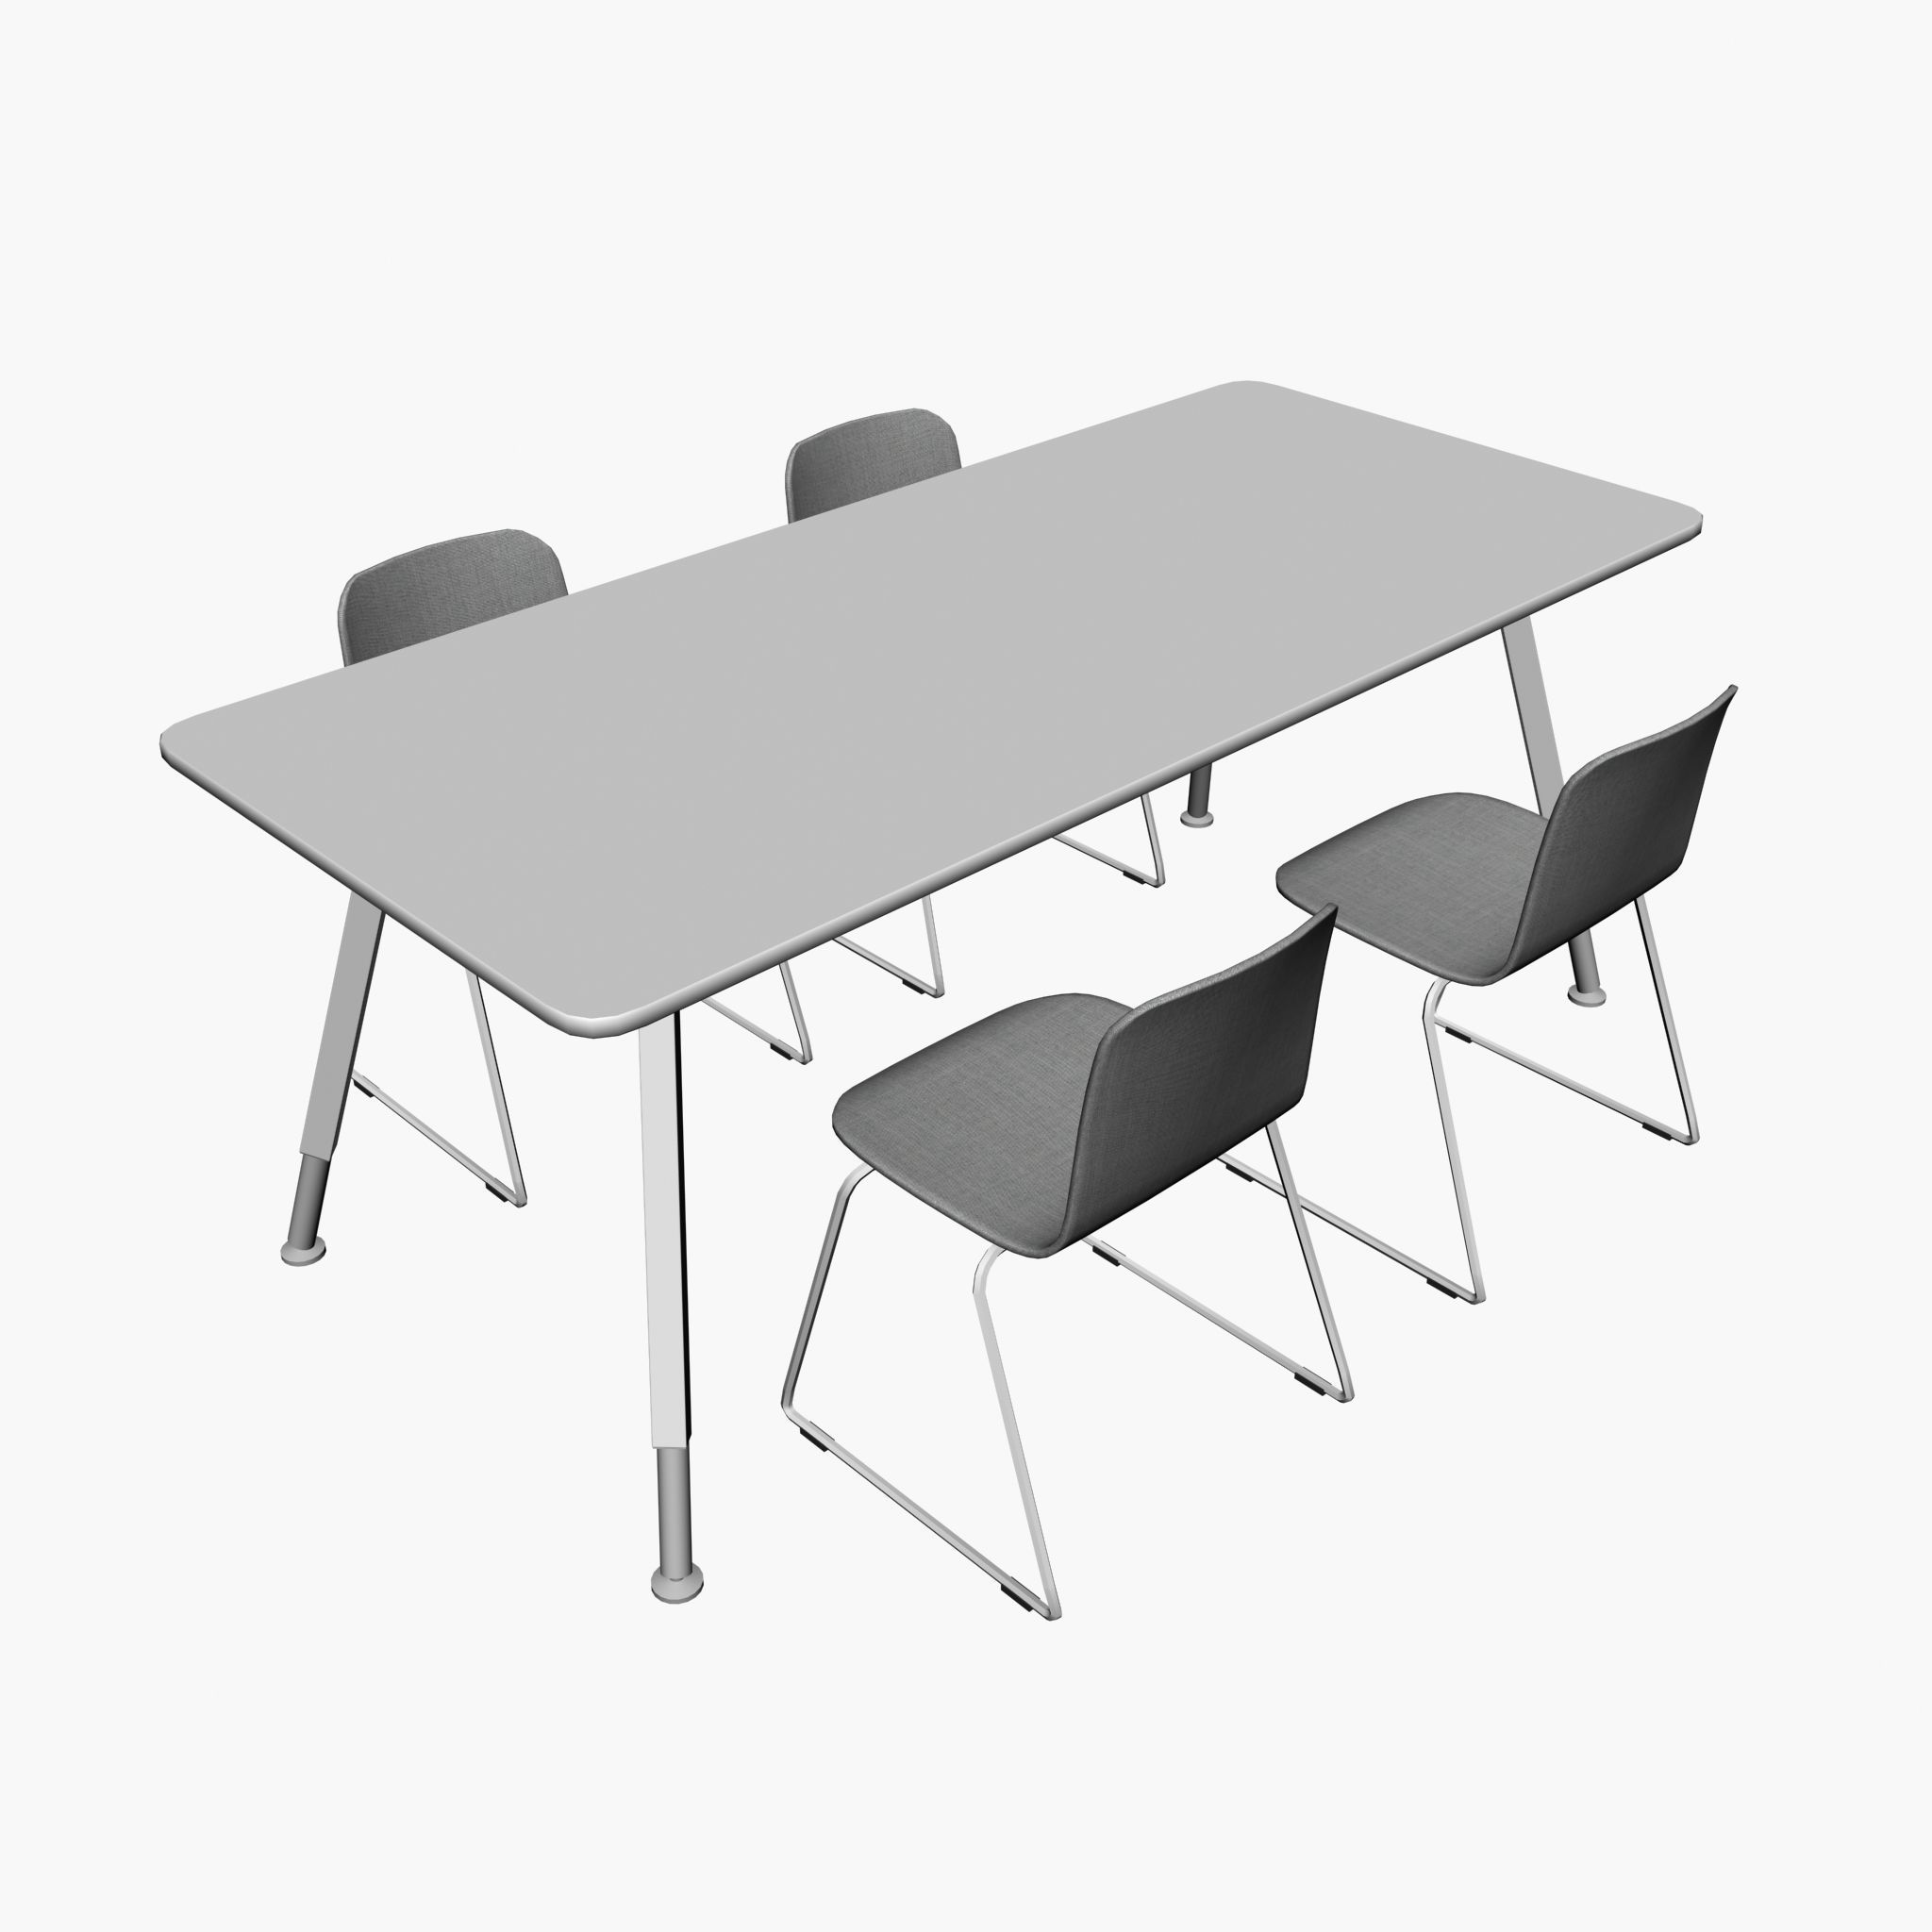 2048x2048 Conference Table Pp 01 3d Model Cgtrader